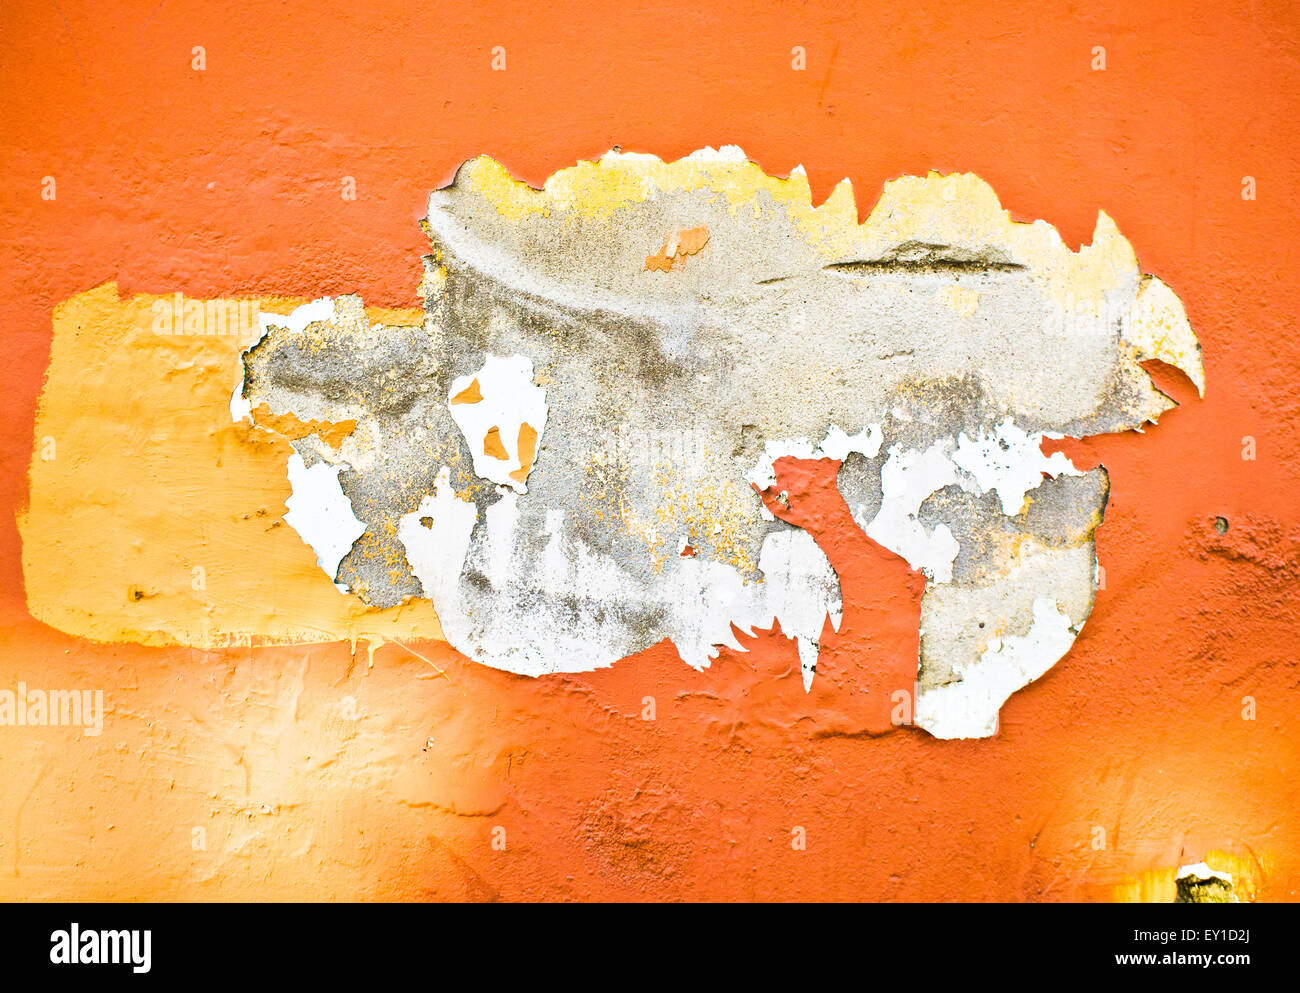 Peeling orange paint on a stone wall, as a background Stock Photo